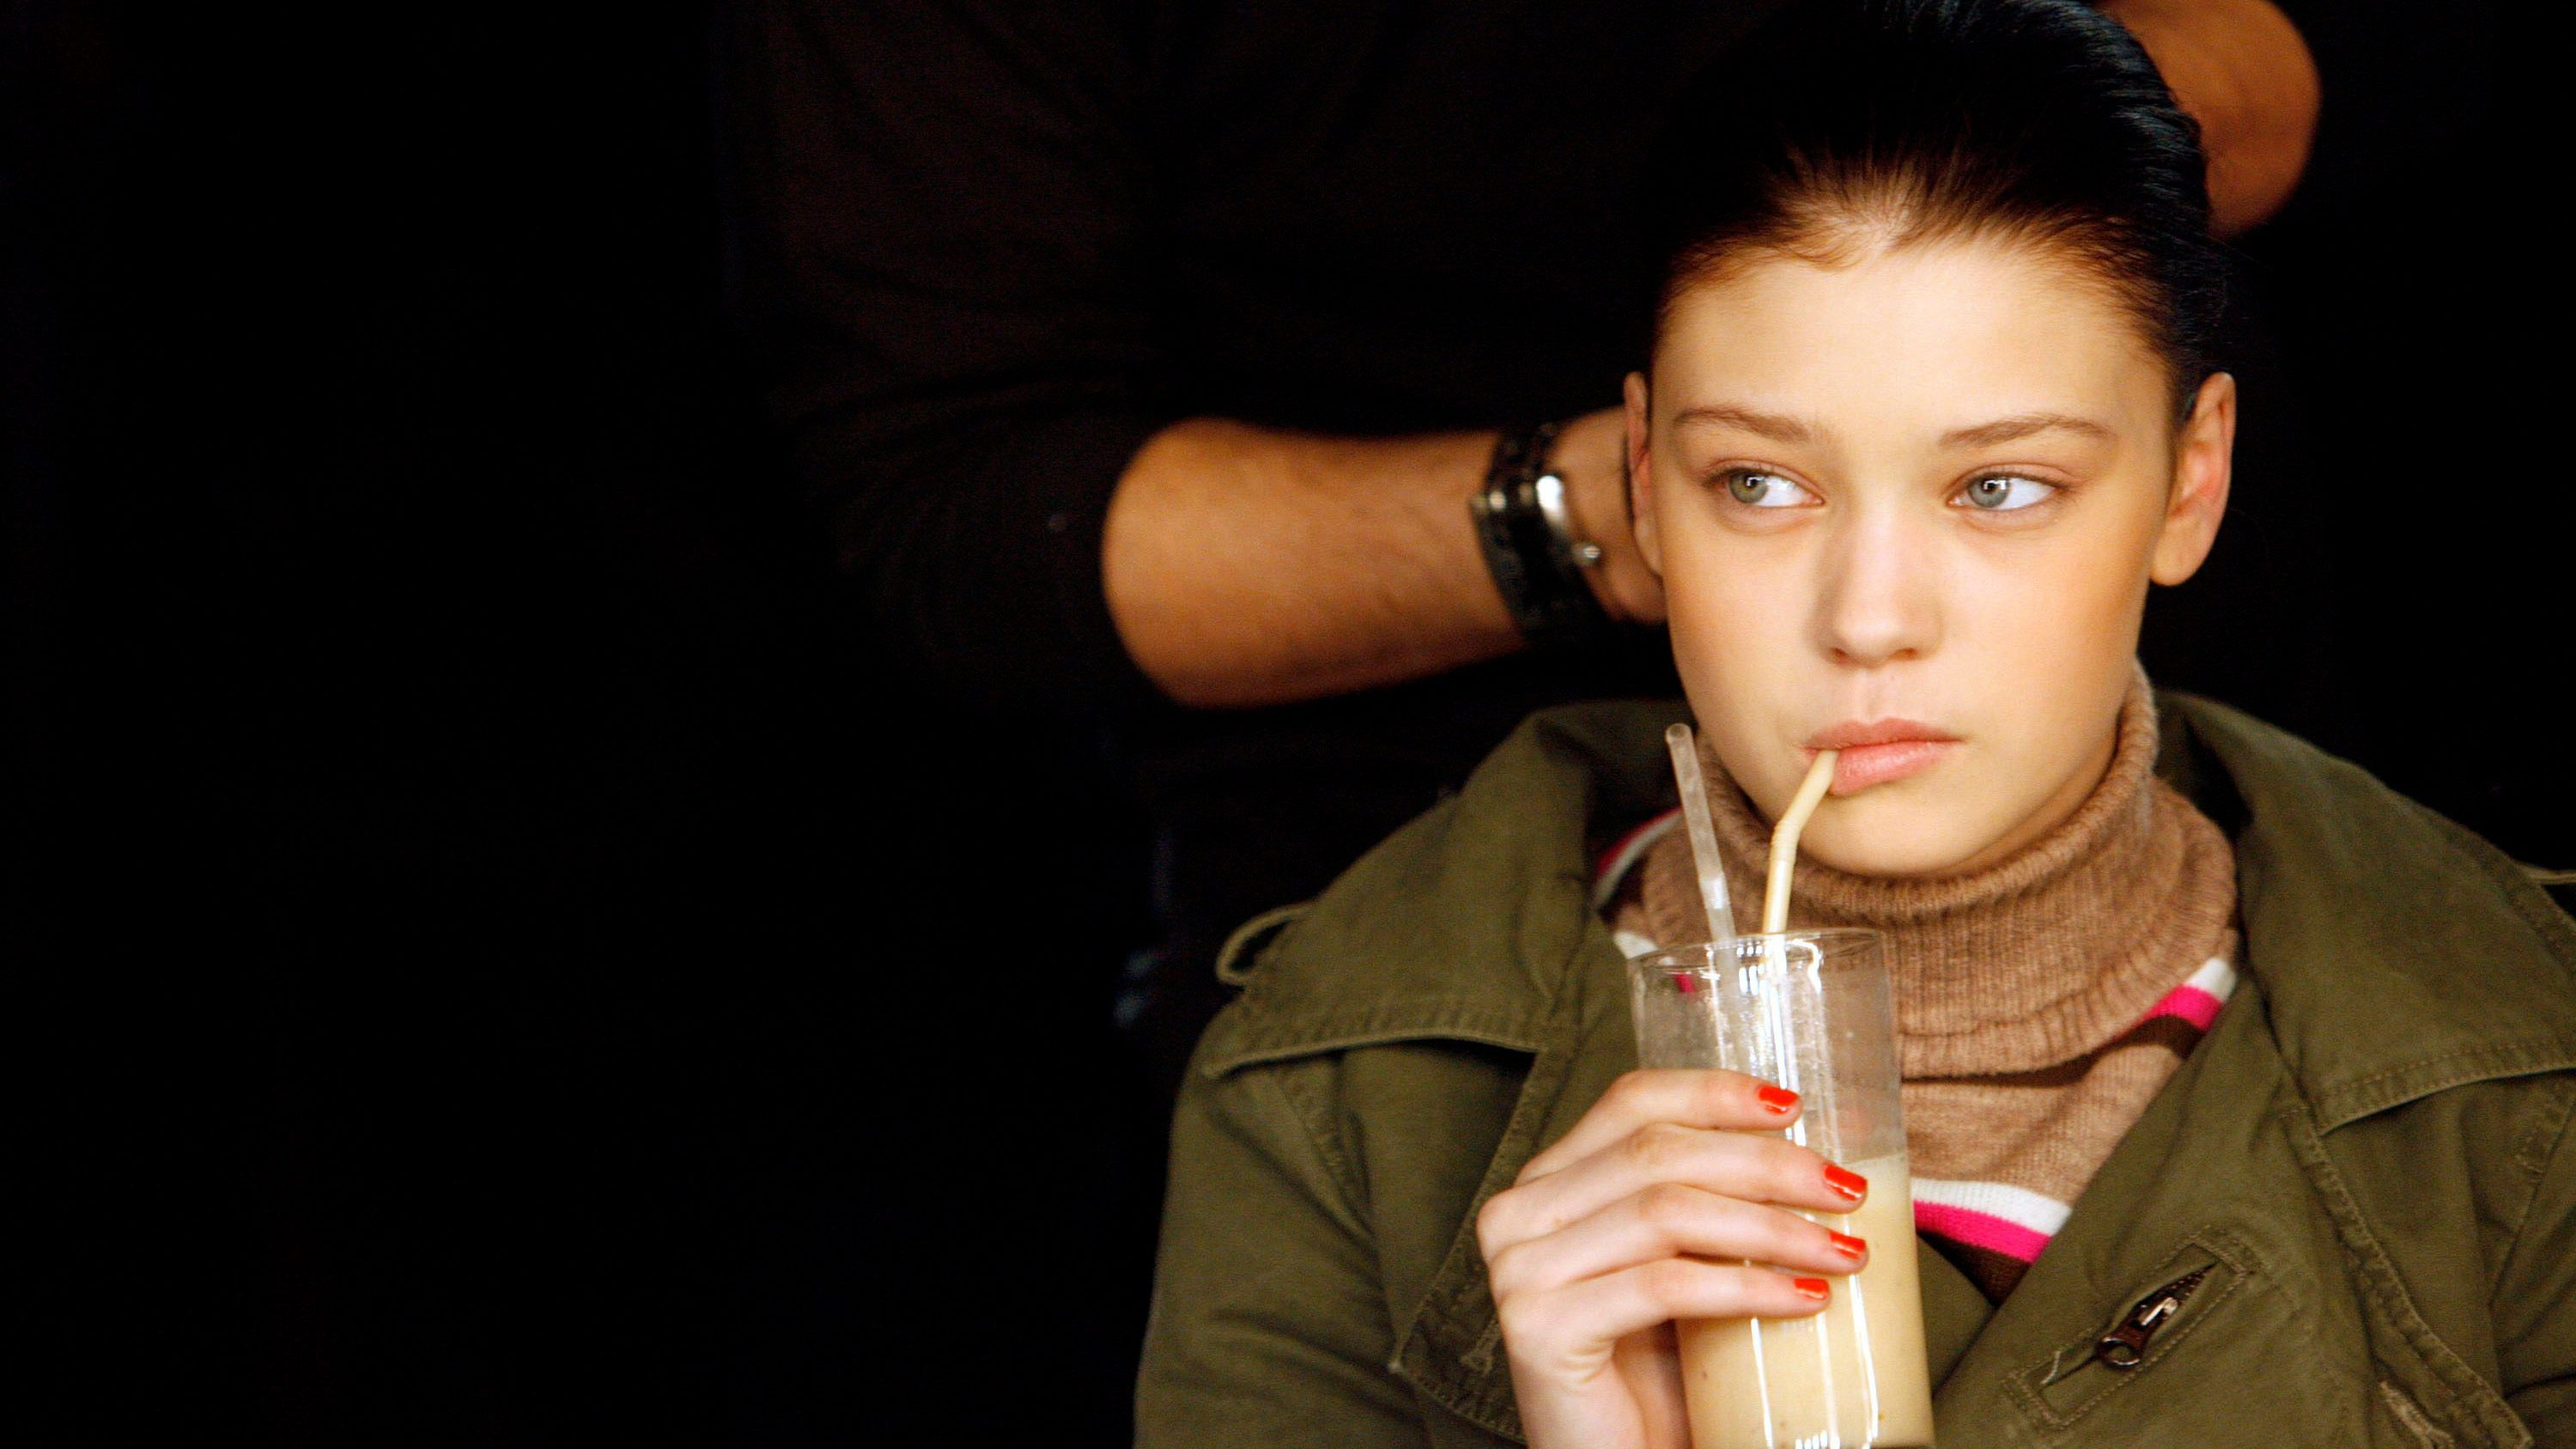 A model drinks a smoothie as she gets ready before Gharani Strok's Autumn/Winter 2007 show at London Fashion Week